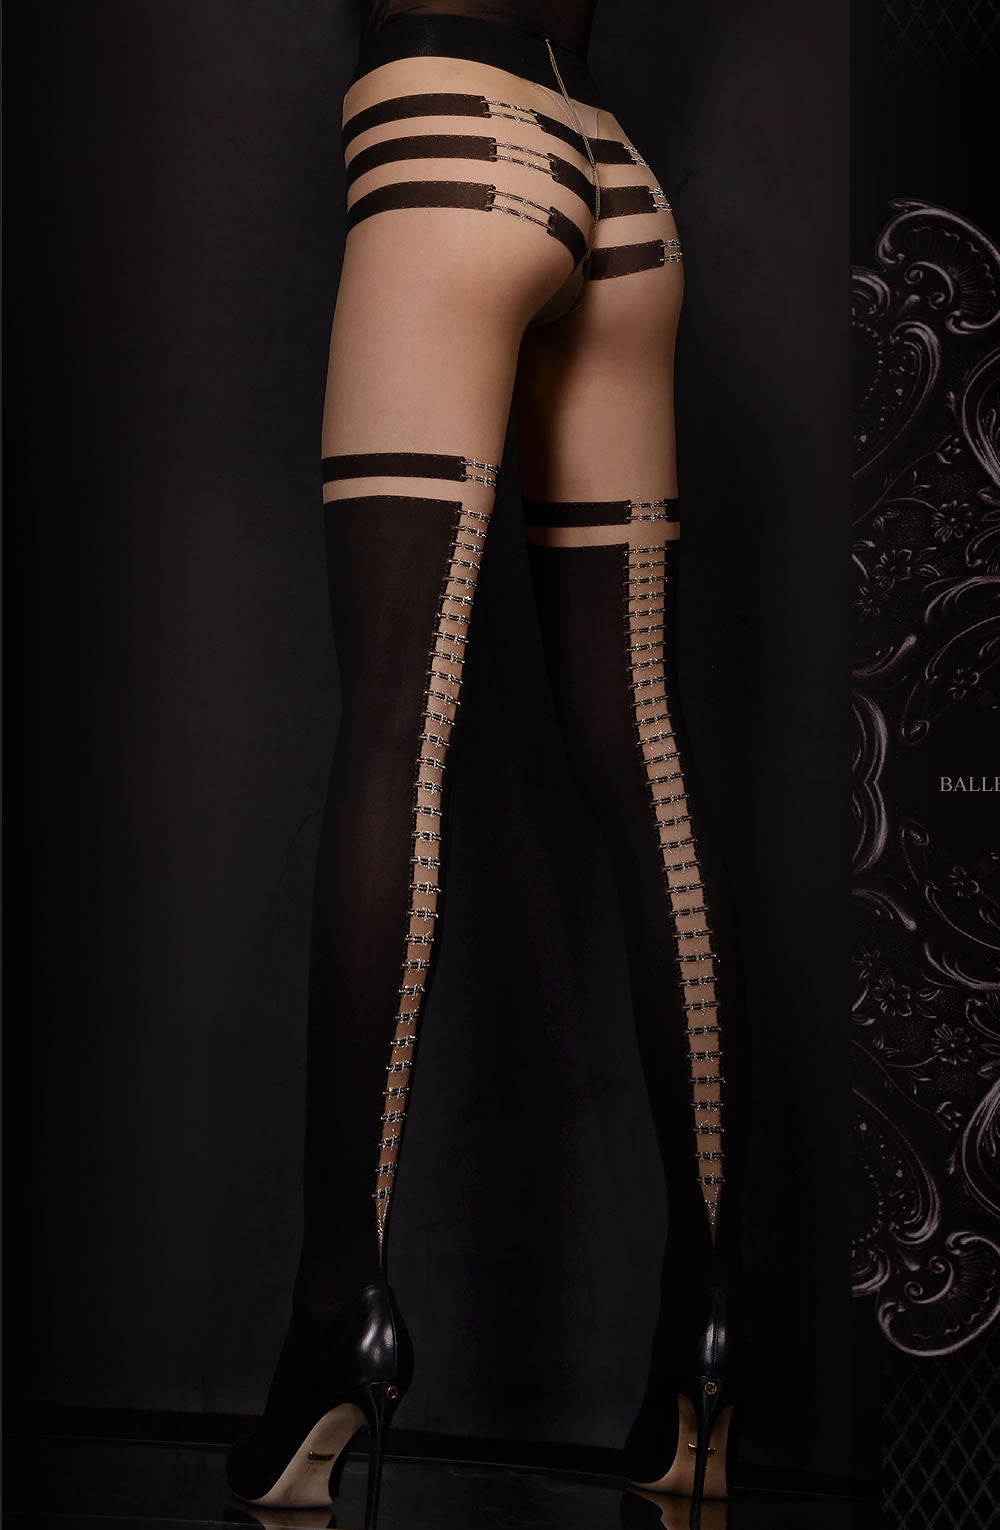 sexy black tights with decorative back seam pattern which is sexy. rear view. by ballerina